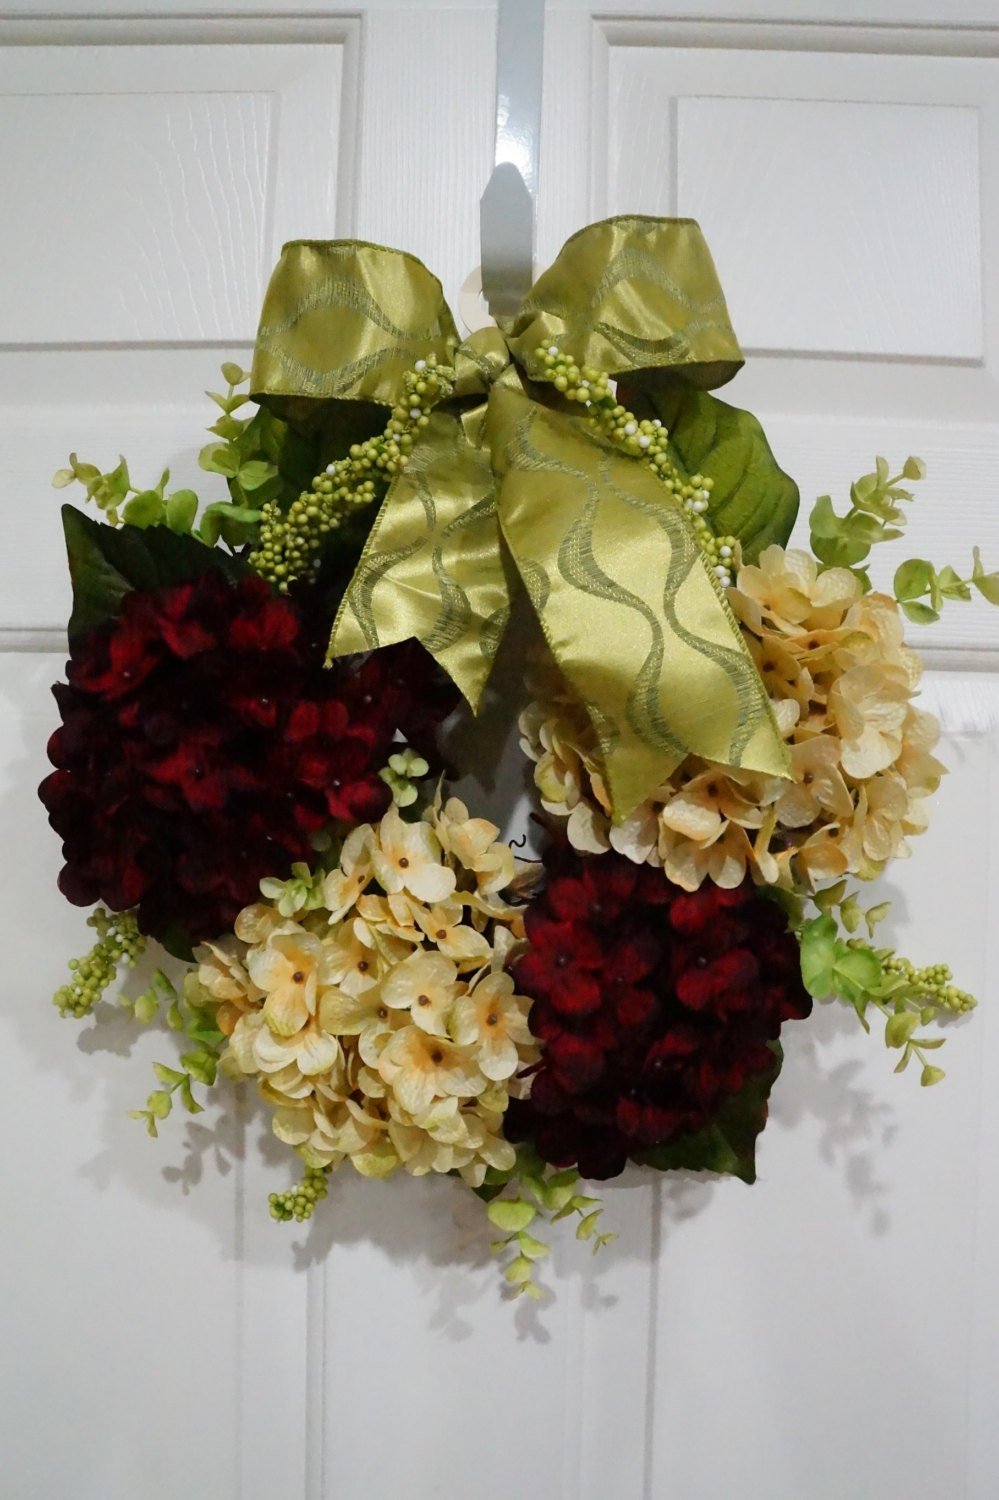 Christmas Hydrangea Wreath with Green Bow-Christmas Gift-House Warming-Red and Beige Hydrangea-Spring Wreath-Mothers Day Gift